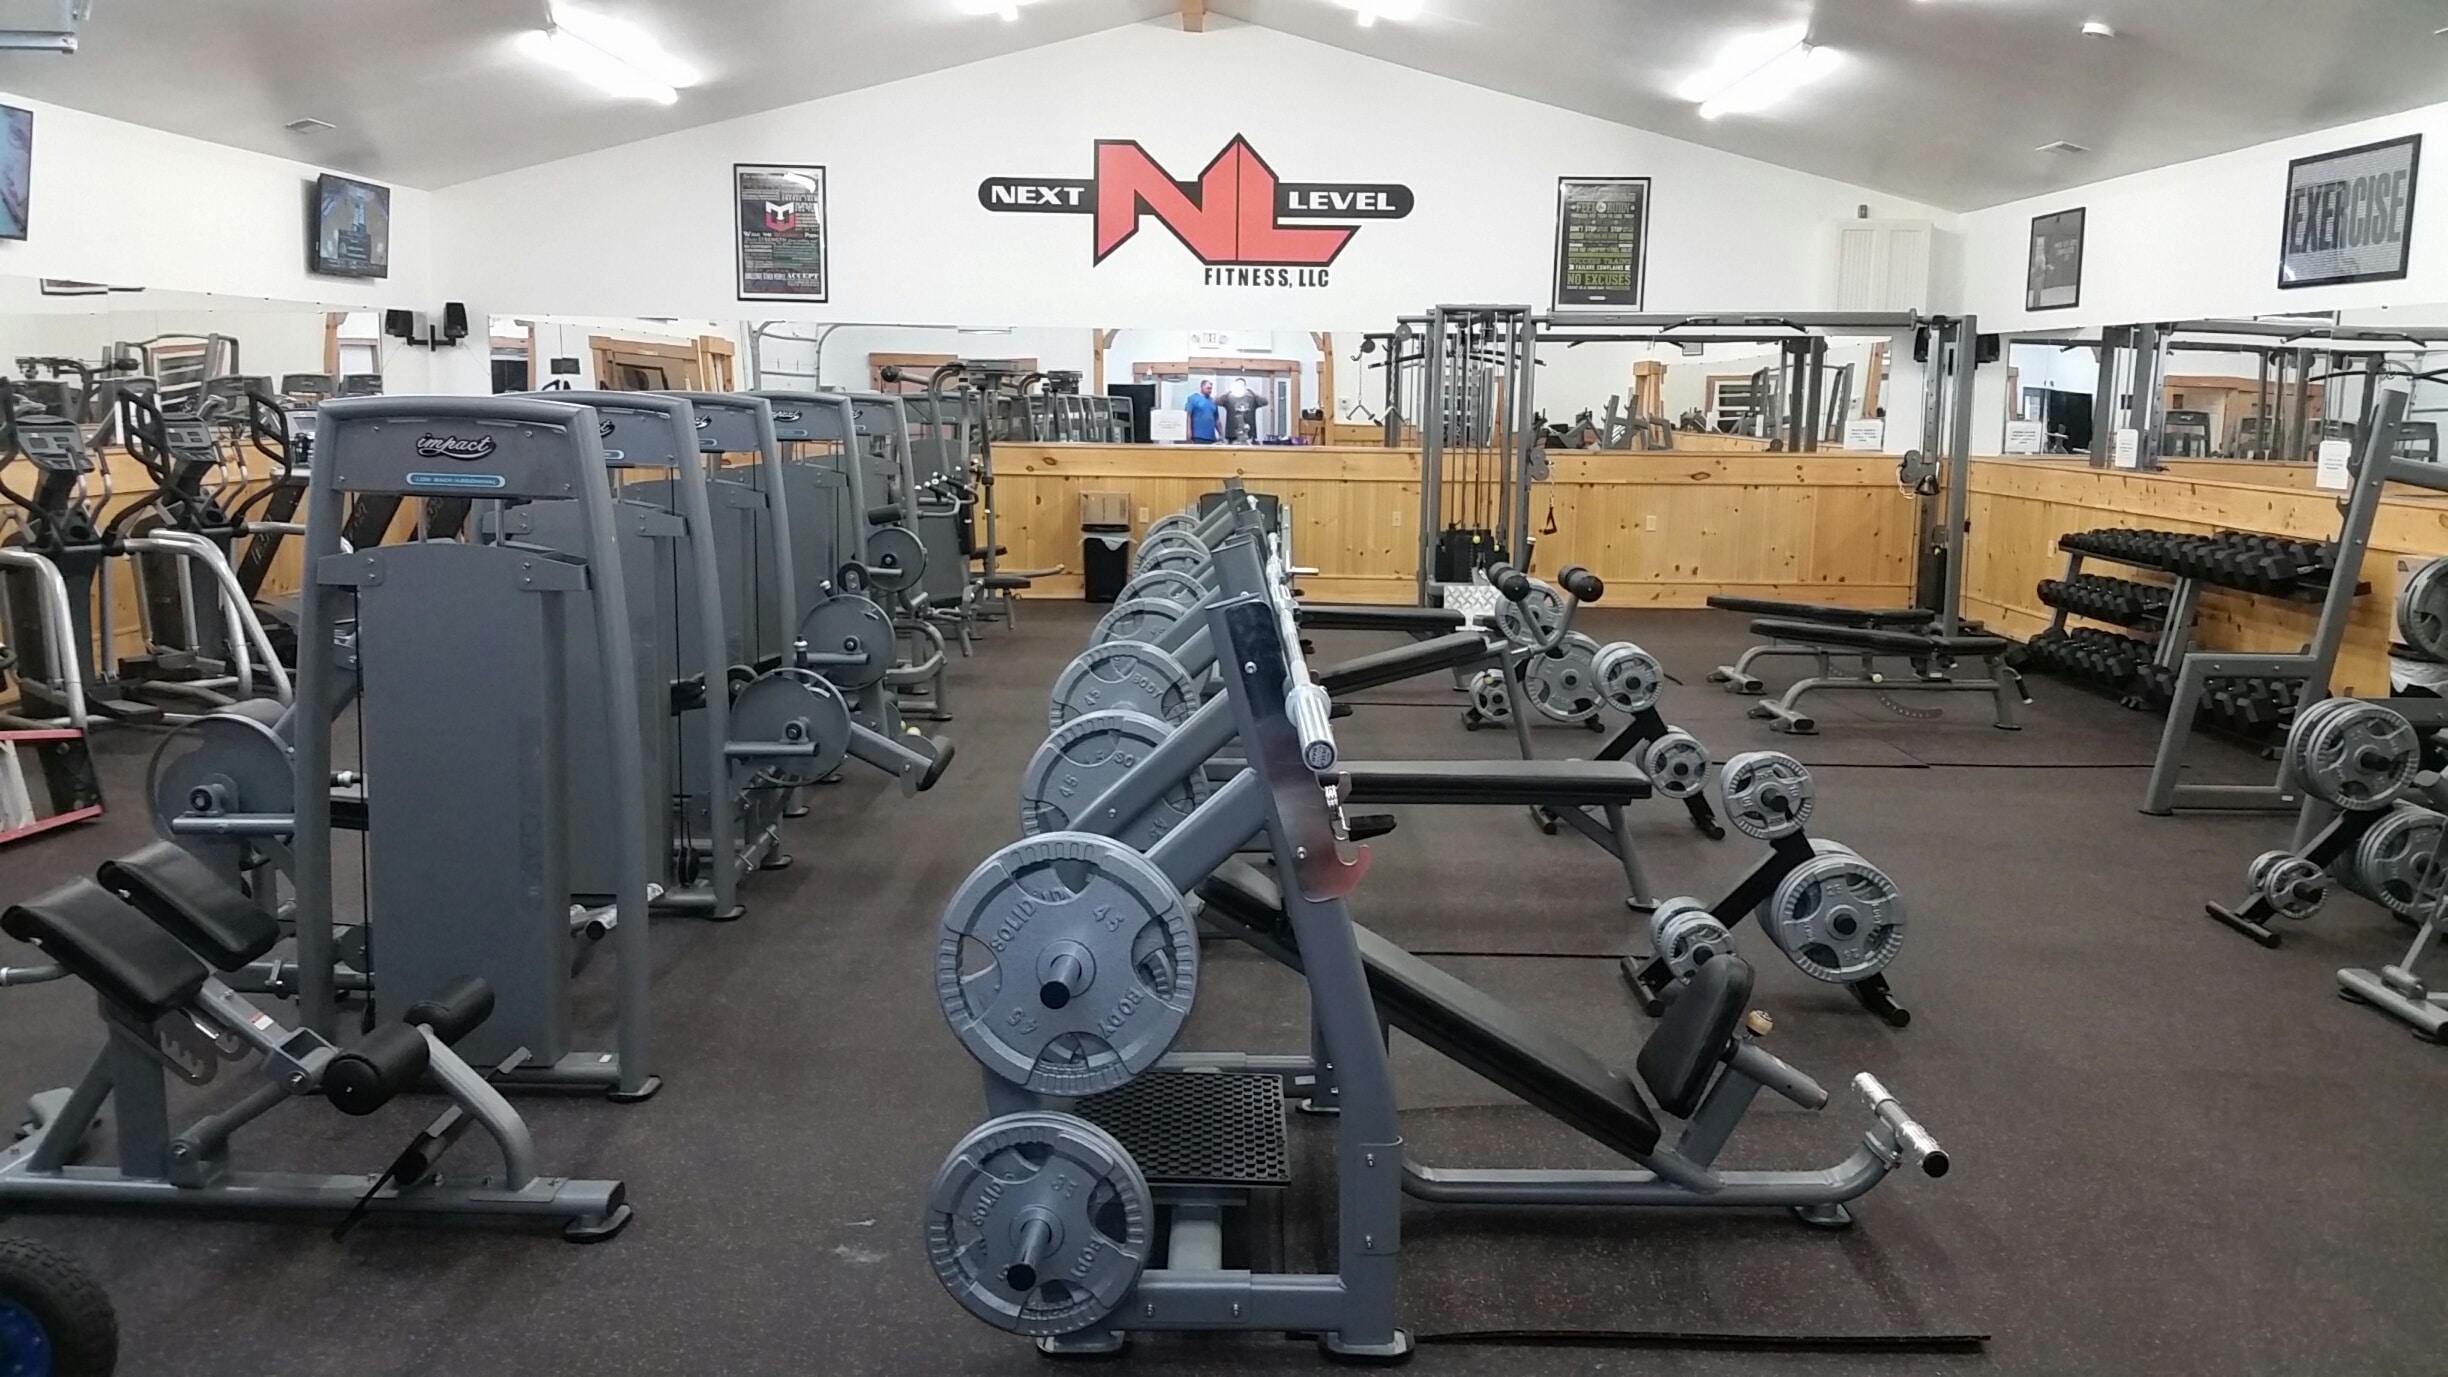 Commercial gym equipment specialists for your gym or fitness center